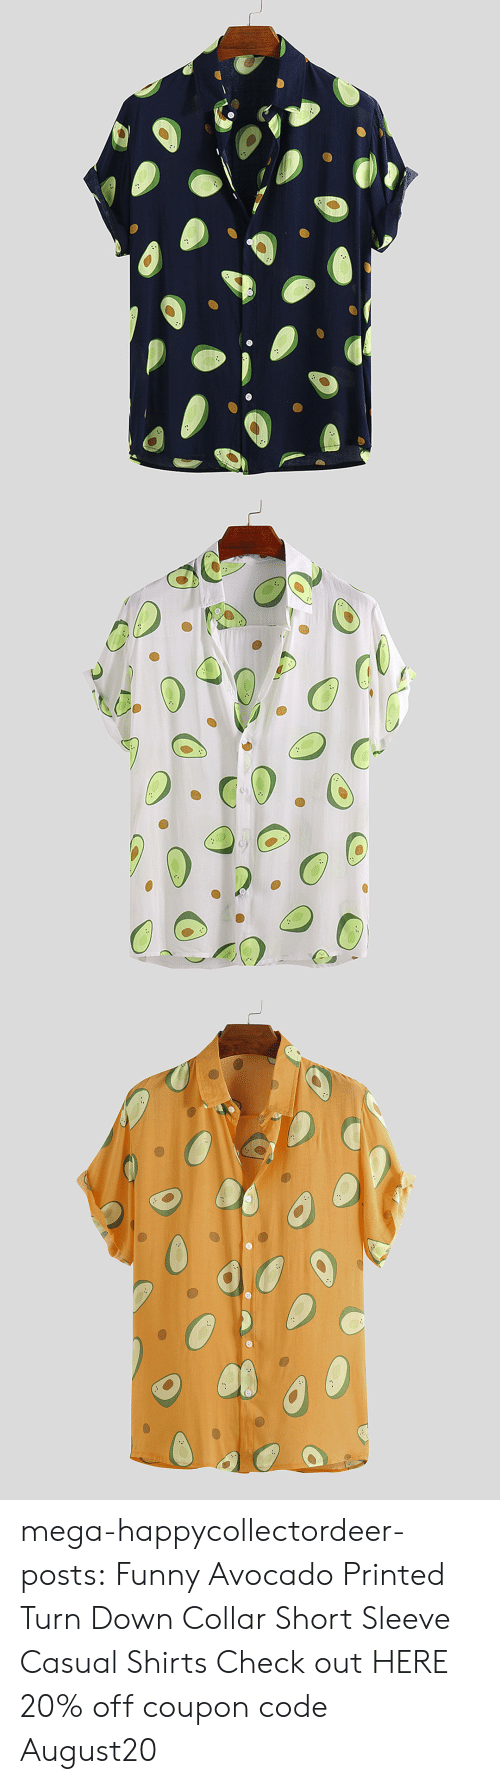 Collar: mega-happycollectordeer-posts:   Funny Avocado Printed Turn Down Collar Short Sleeve Casual Shirts   Check out HERE 20% off coupon code:August20